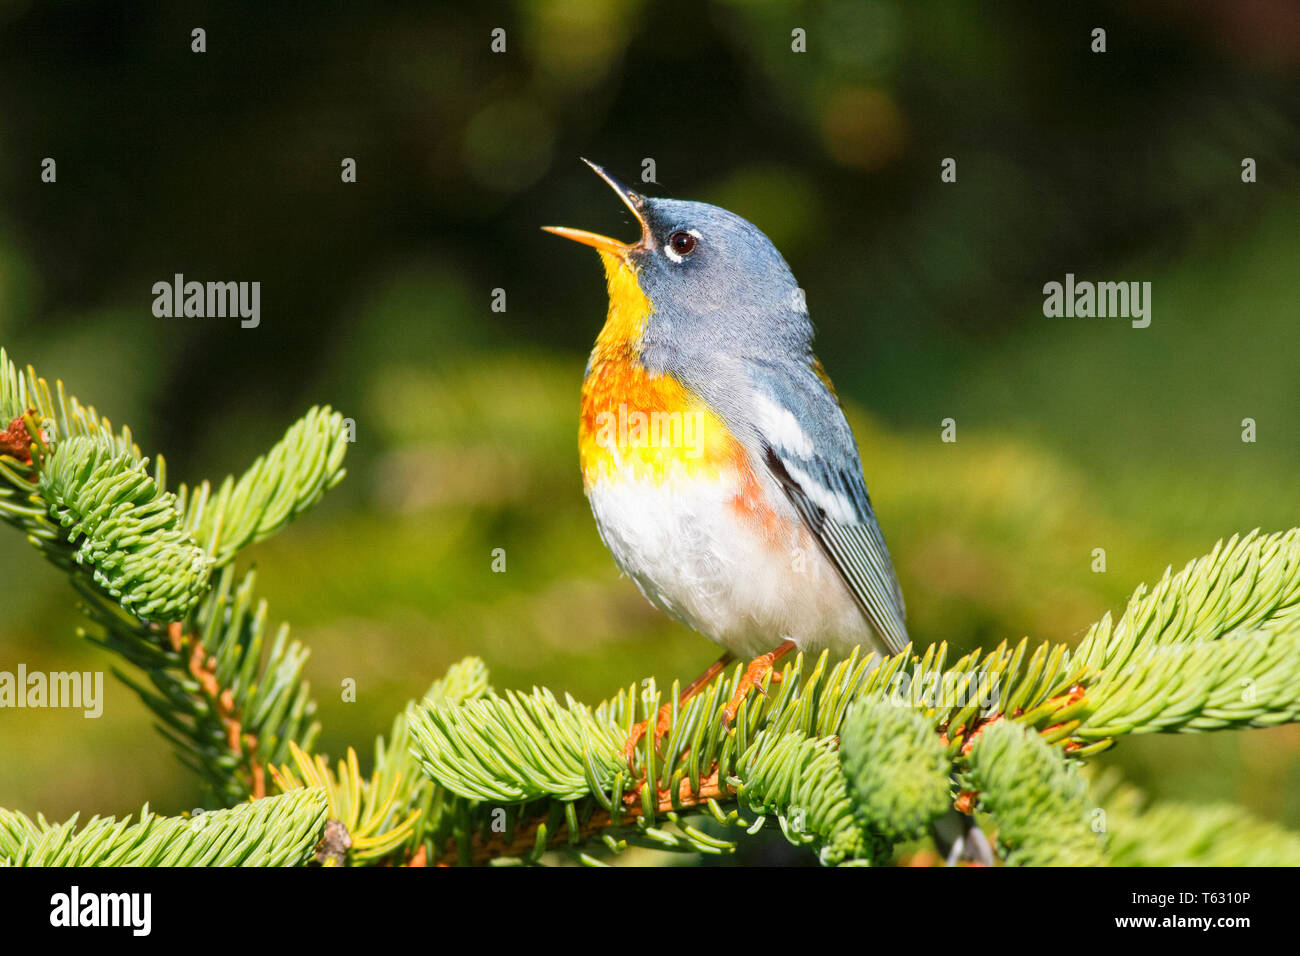 northern parula, Setophaga americana, male singing in spring time, Nova Scotia, Canada - Stock Image